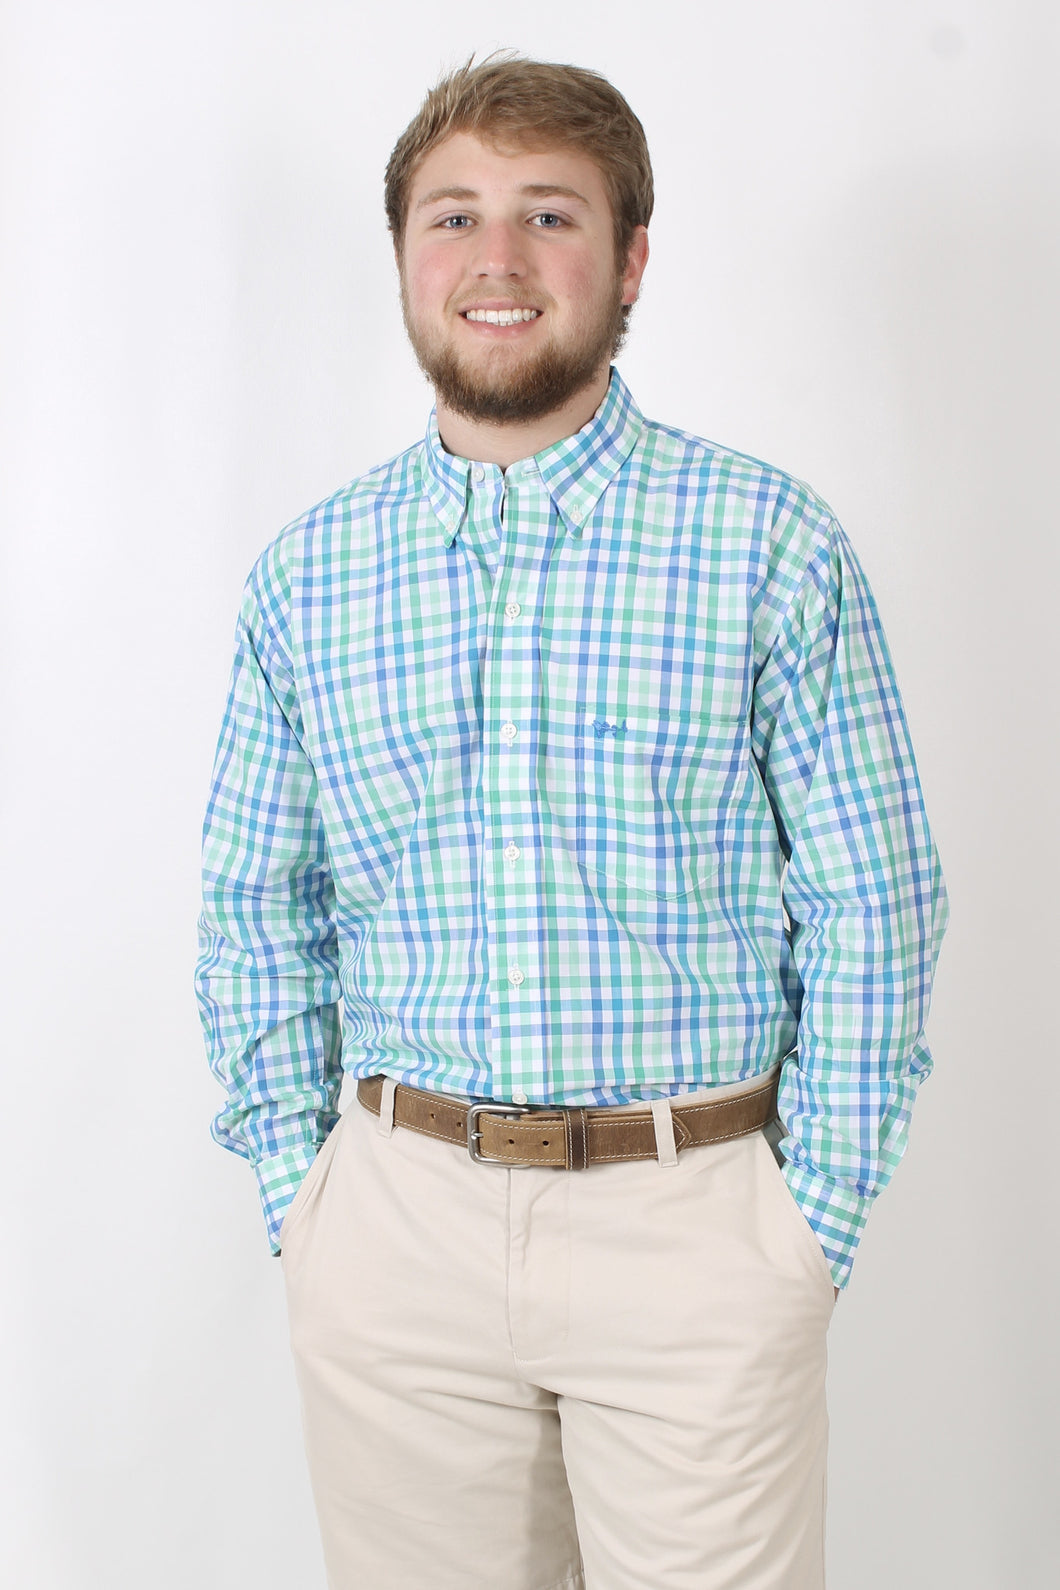 Green Plaid Dress Shirt- Coastal Cotton Button Down Shirt Front